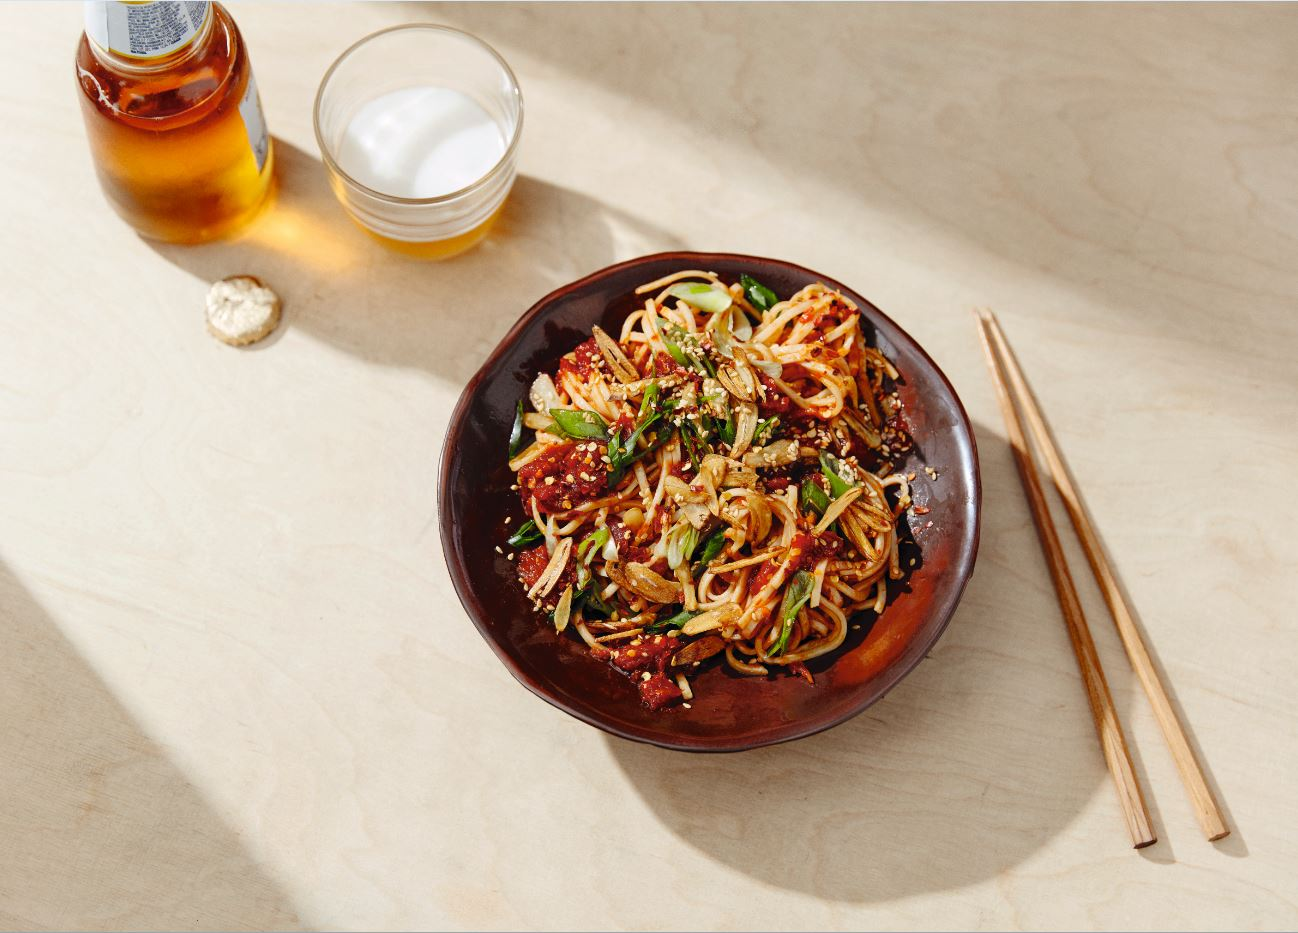 Chilled-chili-tomato-noodles-Healthy dinners - 5 easy recipes from a tin